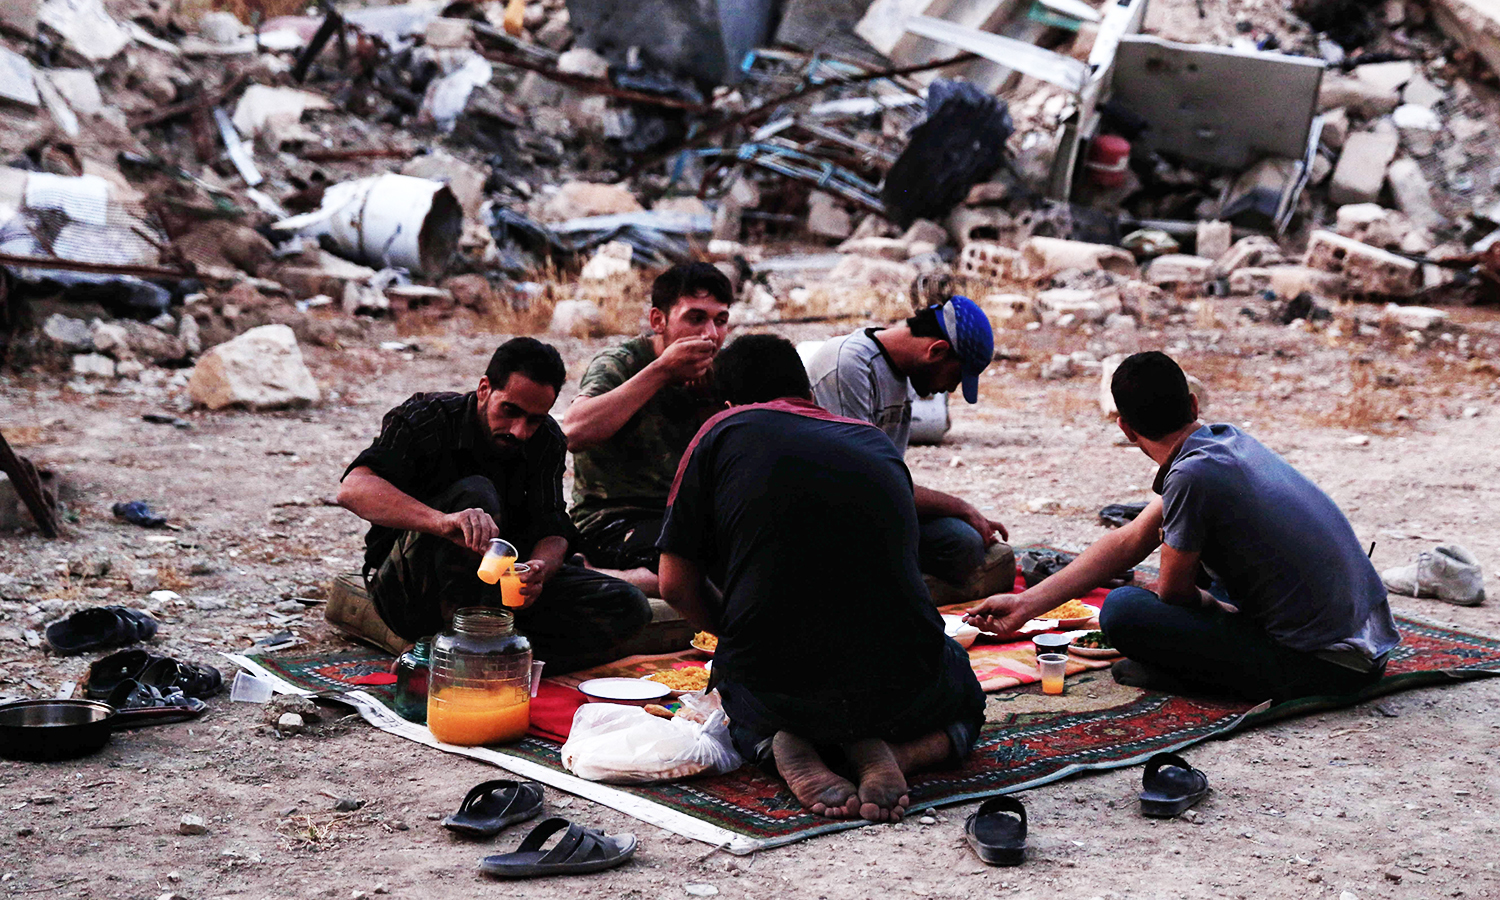 Fighters from the Free Syrian Army sit in front of detroyed buildings as they prepare to break their fast during Ramazan on June 16, 2016 in the rebel-held neighbourhood of Jobar, on the eastern outskirts of the capital Damascus. ─ AFP